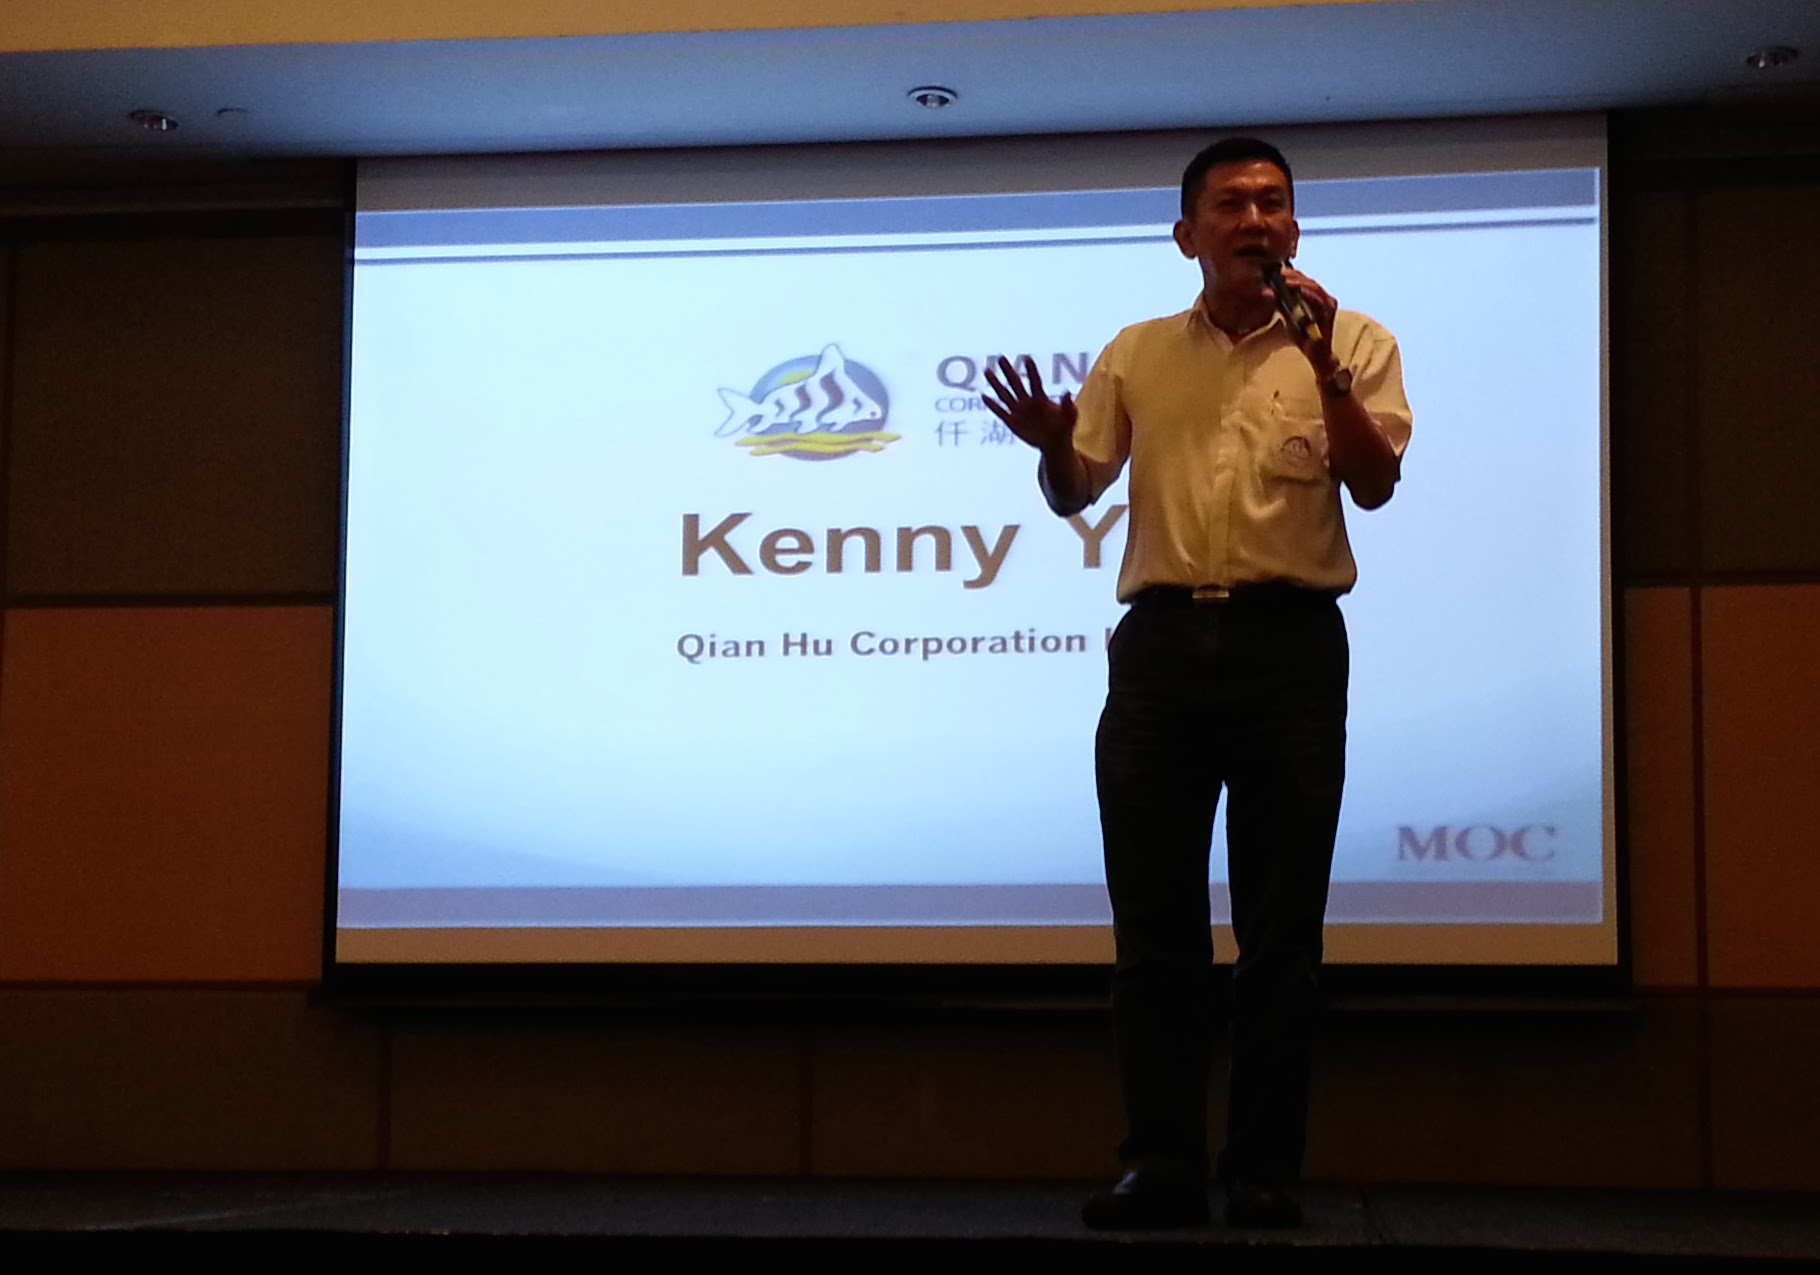 Learning from Kenny Yap of Qian Hu